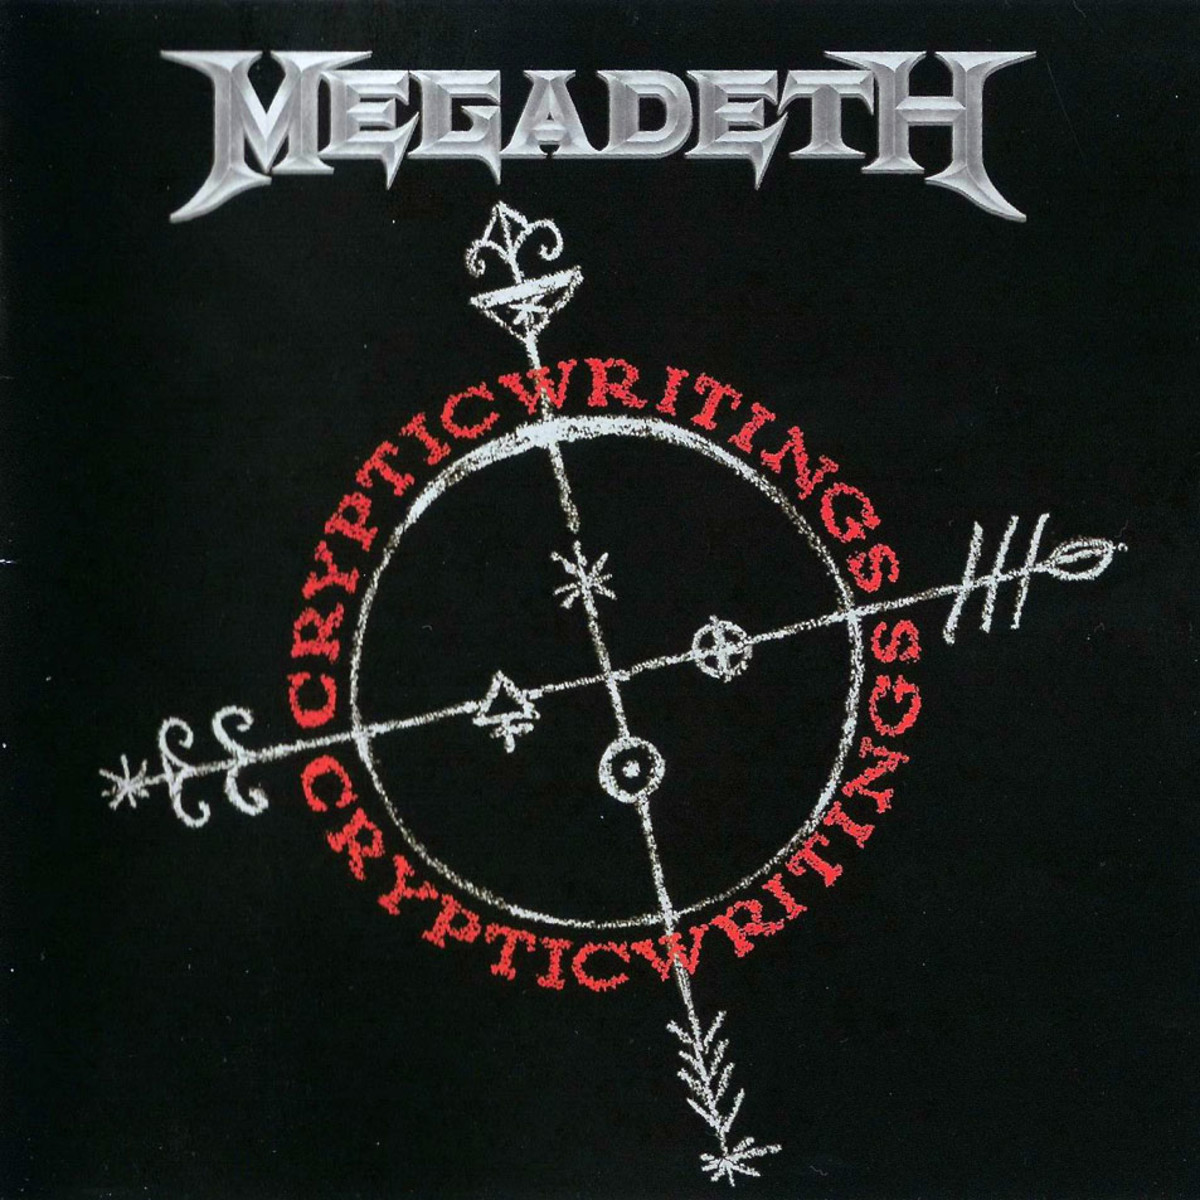 Cryptic Writings: Megadeth Really Drops Off Into Mediocrity With this One